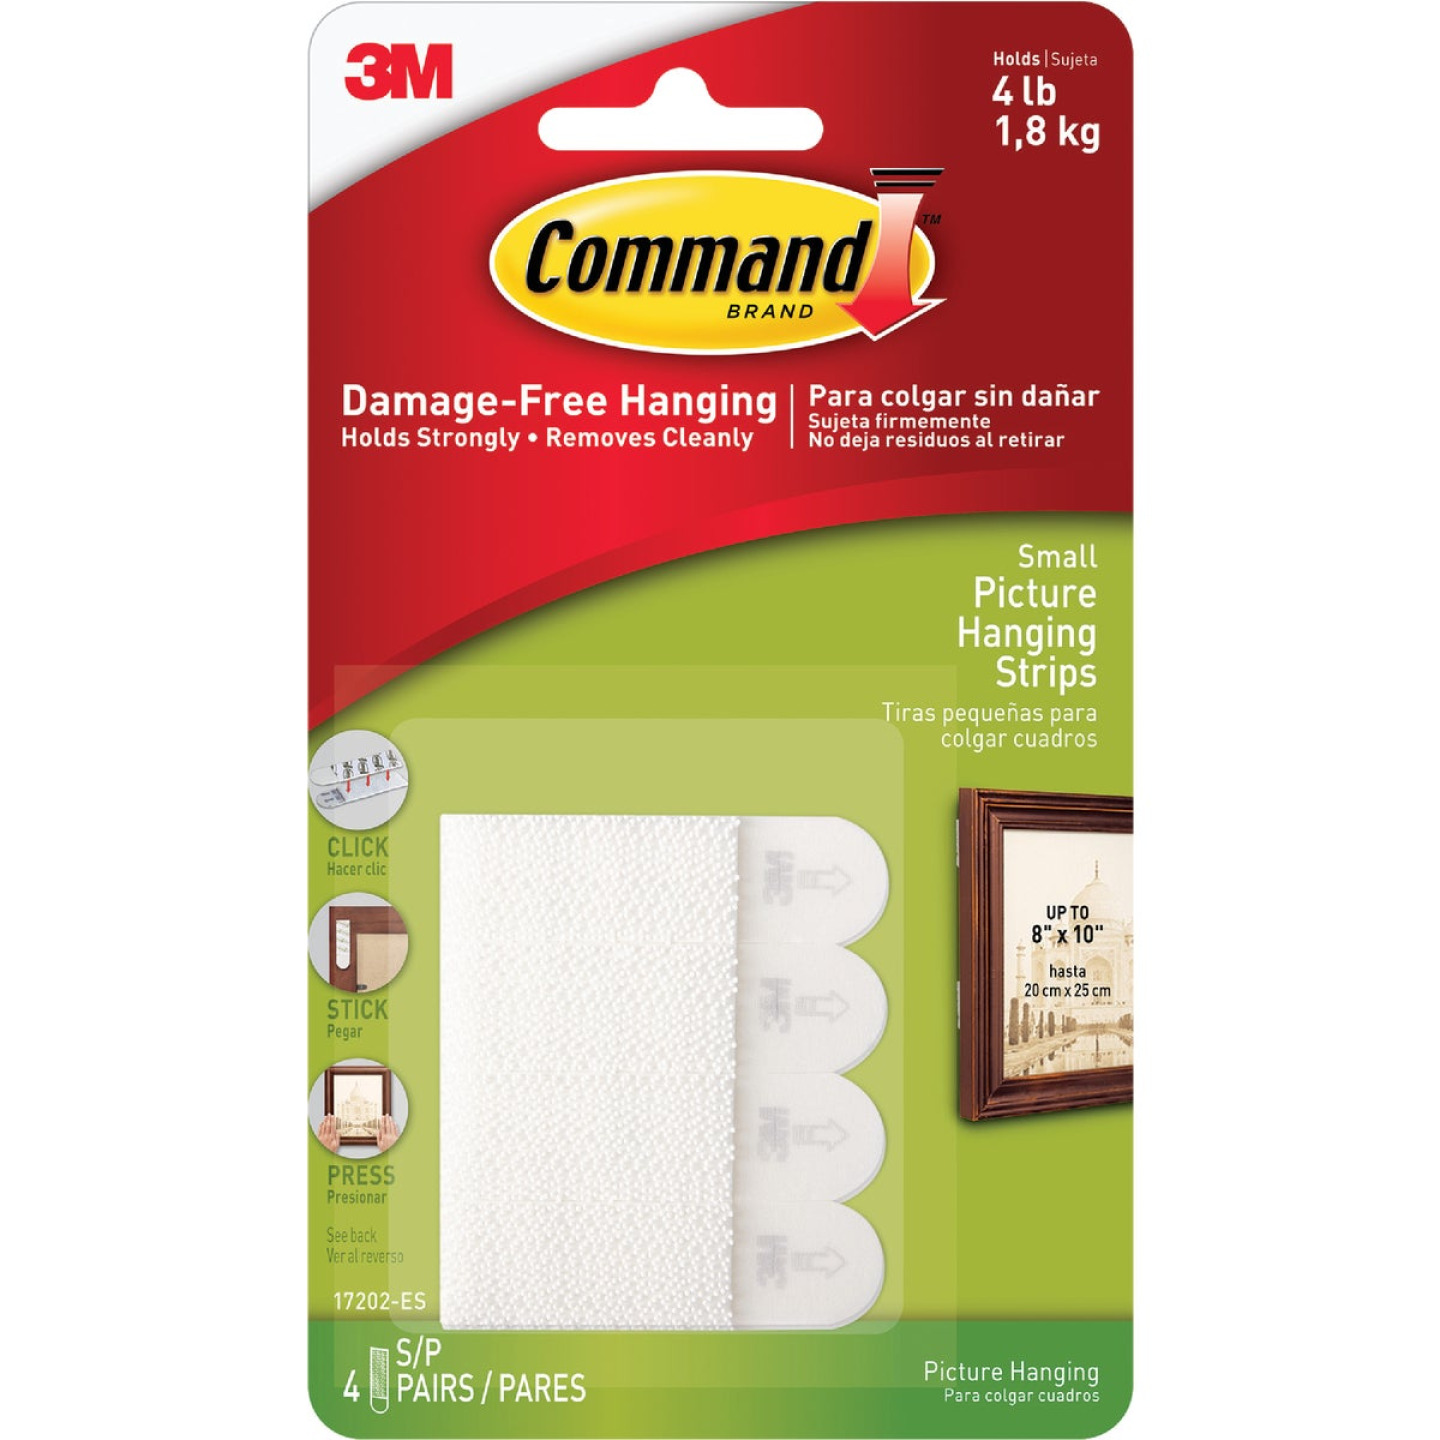 Command 5/8 In. x 2-1/4 In. White Interlocking Picture Hanger (8 Count) Image 2